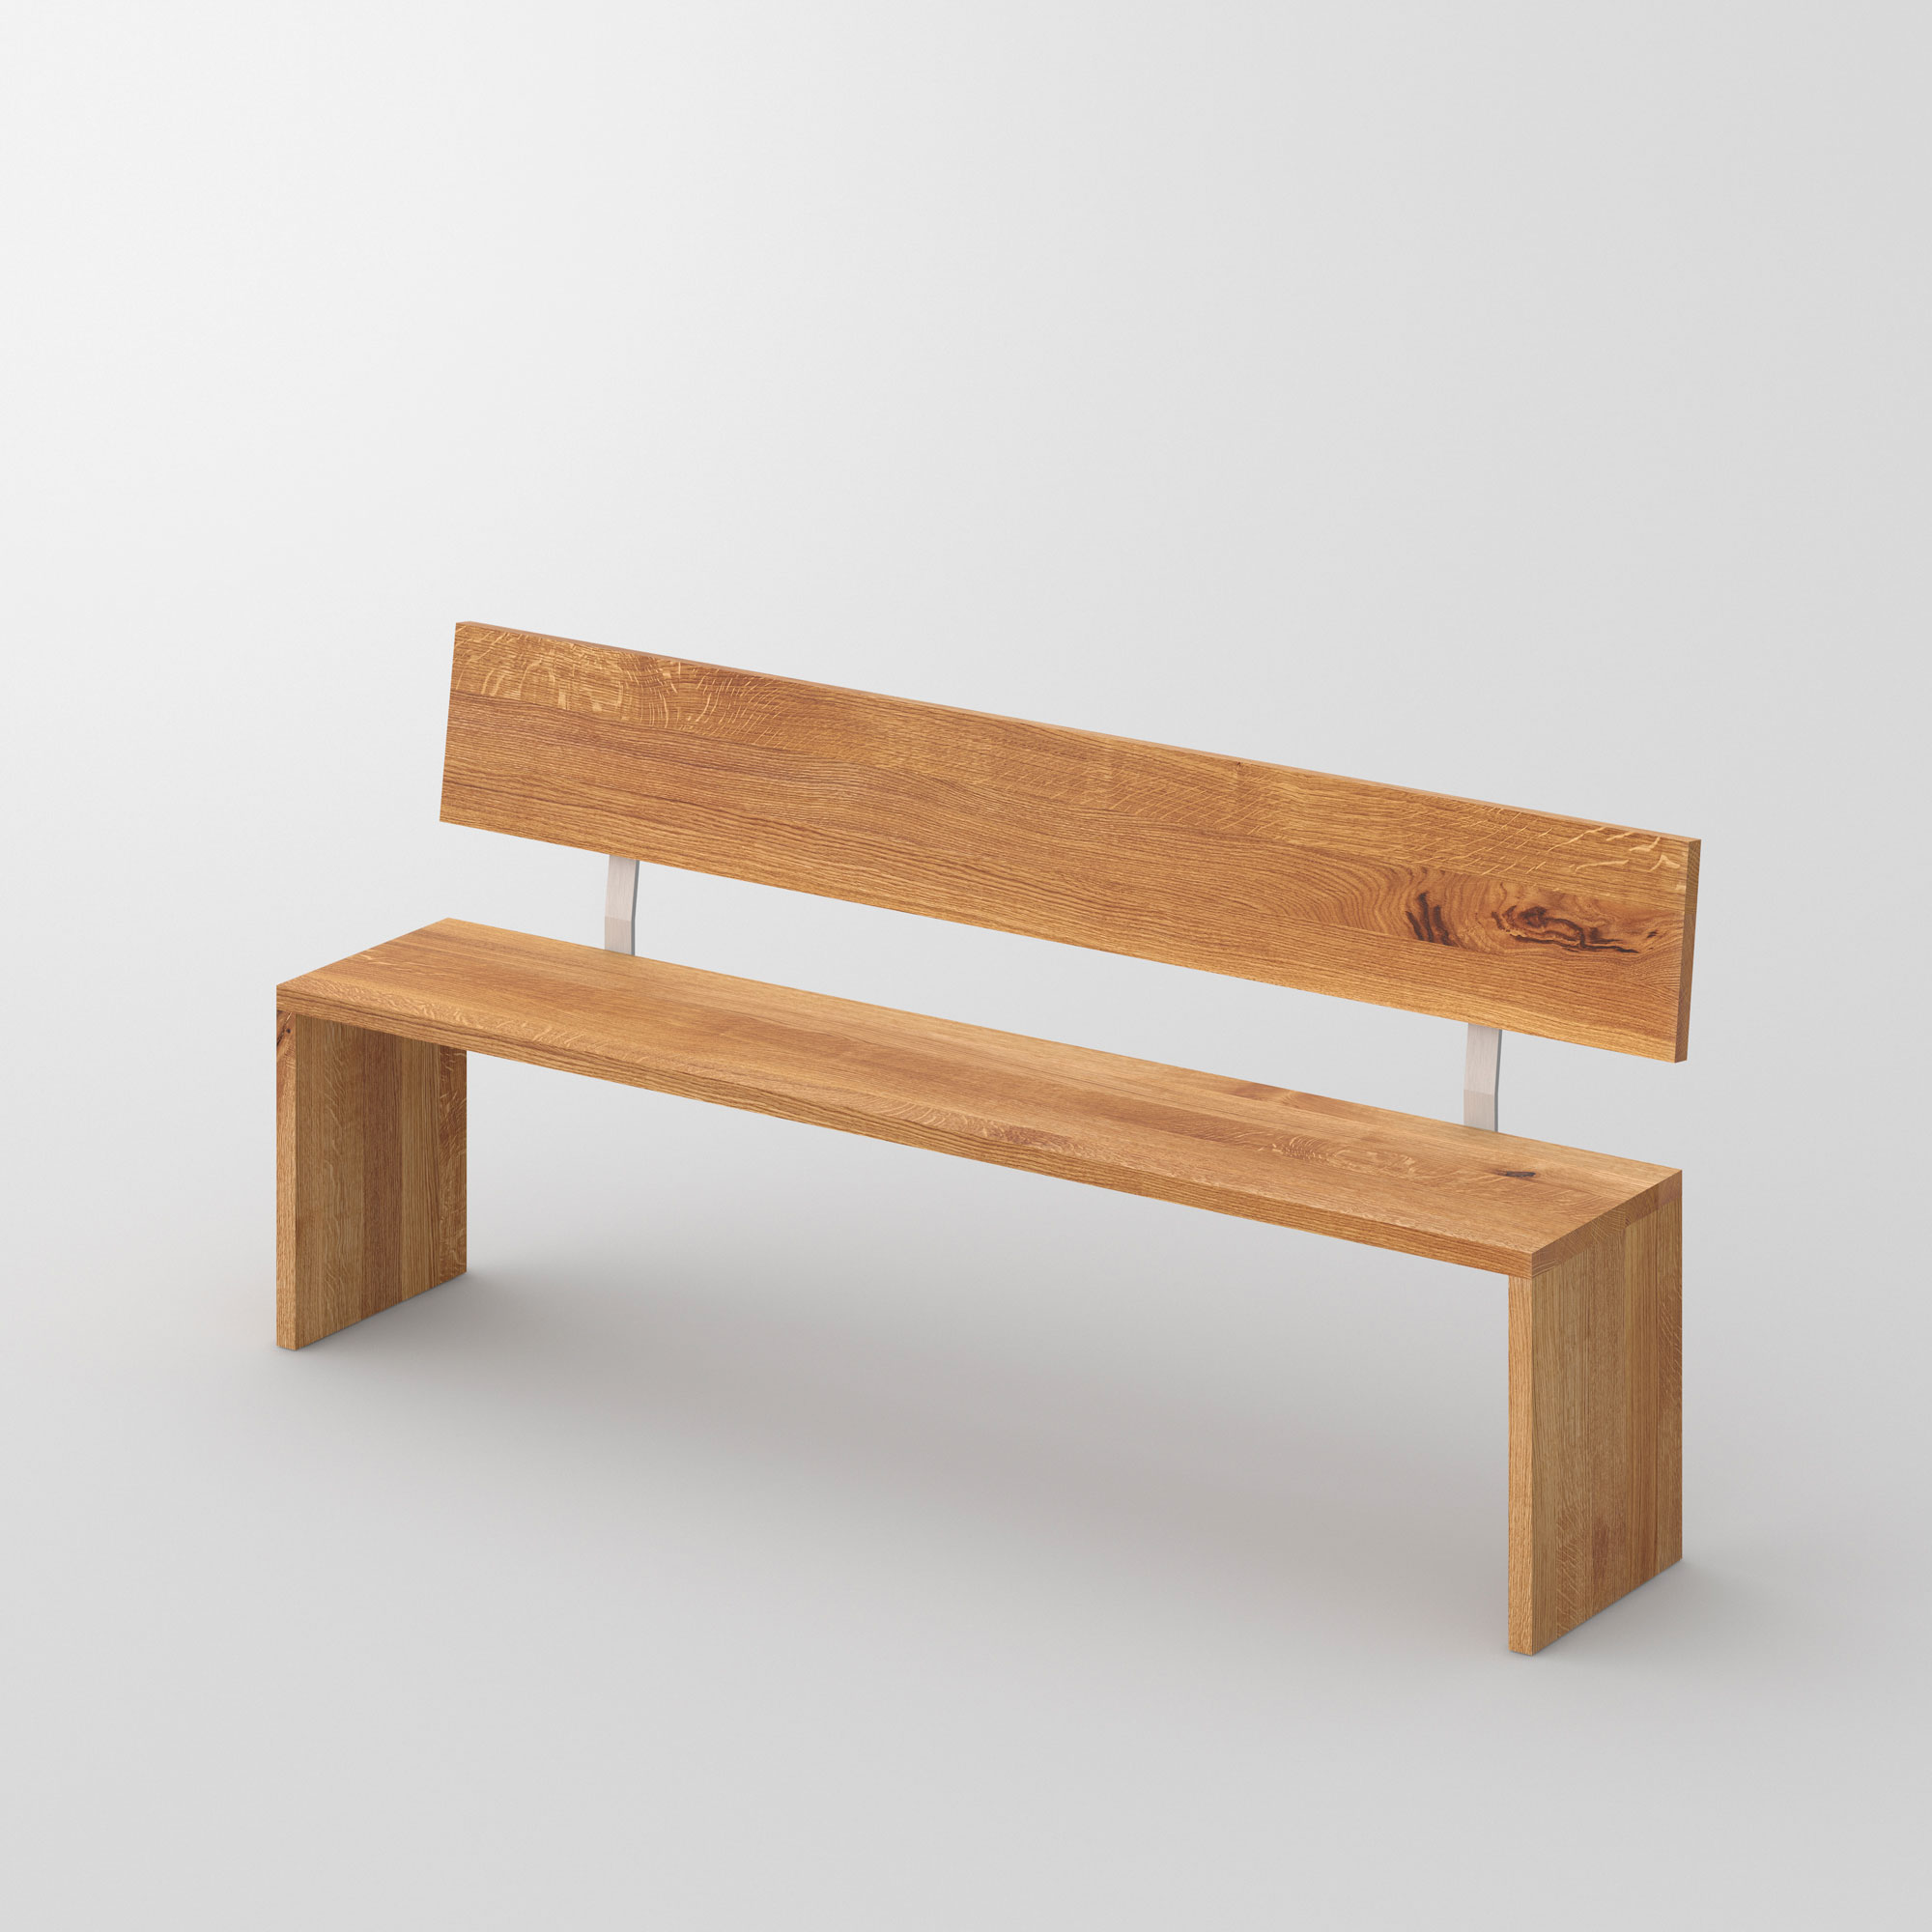 Solid Wood Bench MENA 3 cam1 custom made in solid wood by vitamin design